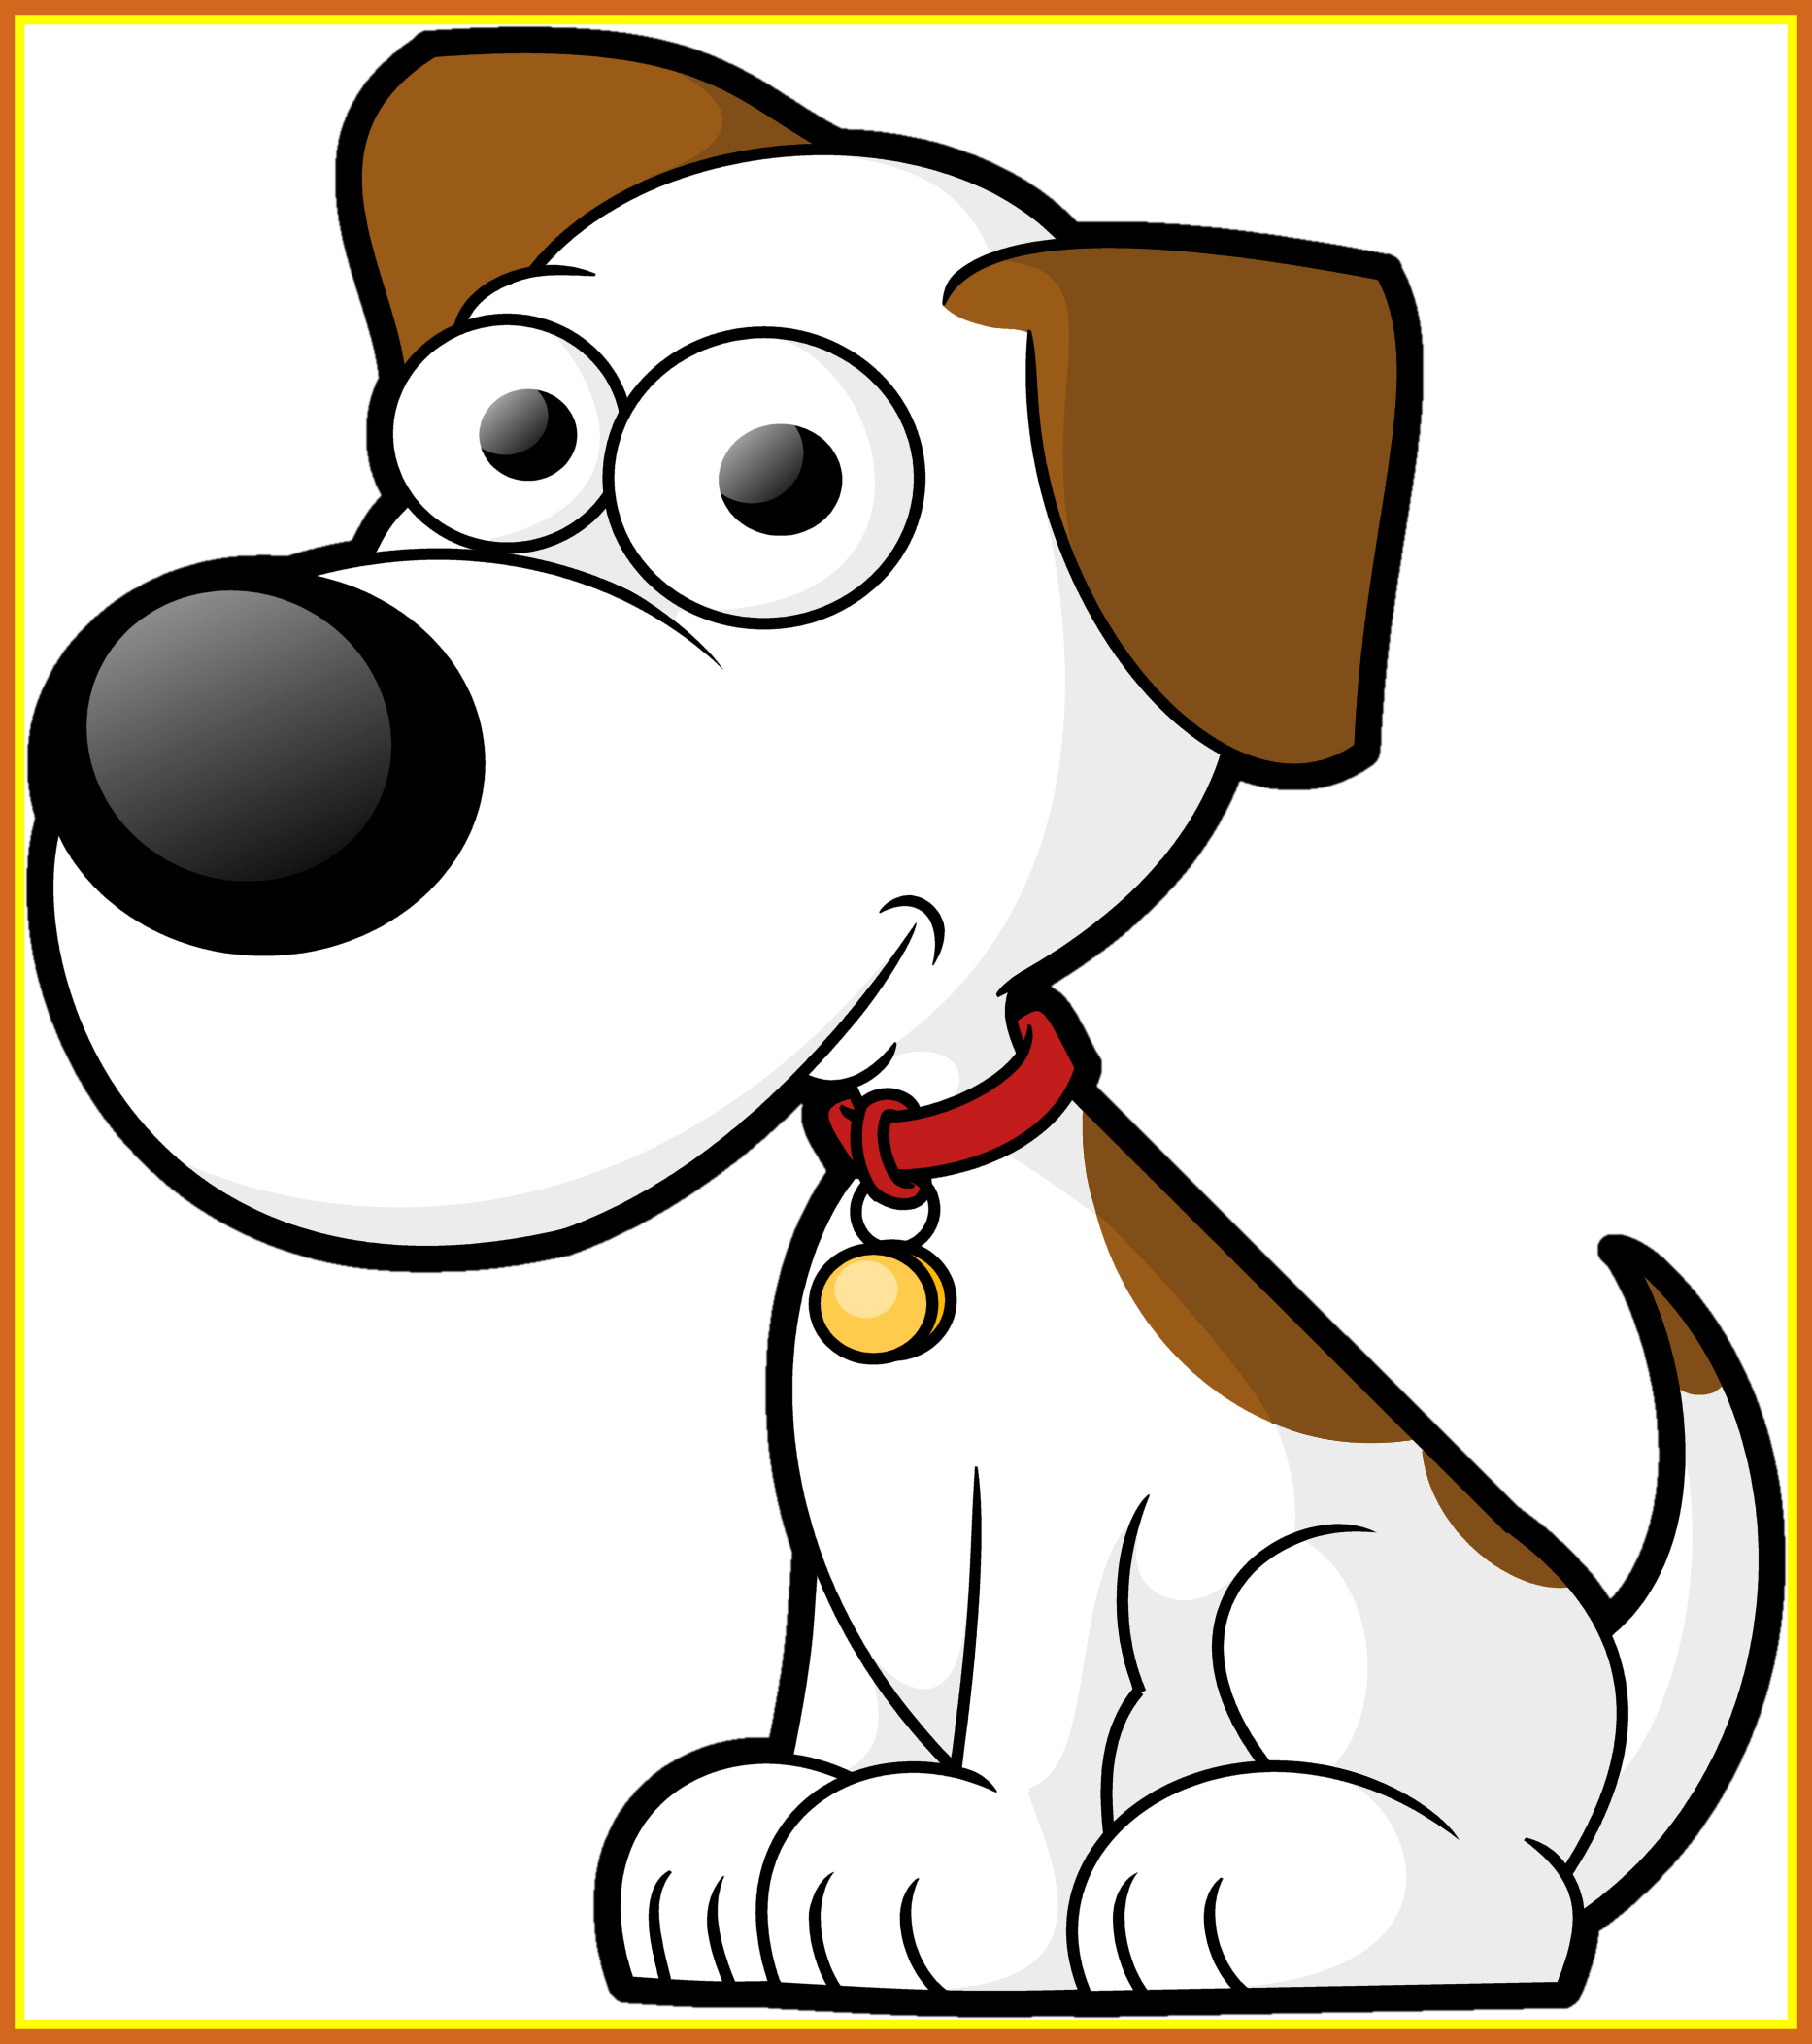 Cute at getdrawings com. Husky clipart dogr